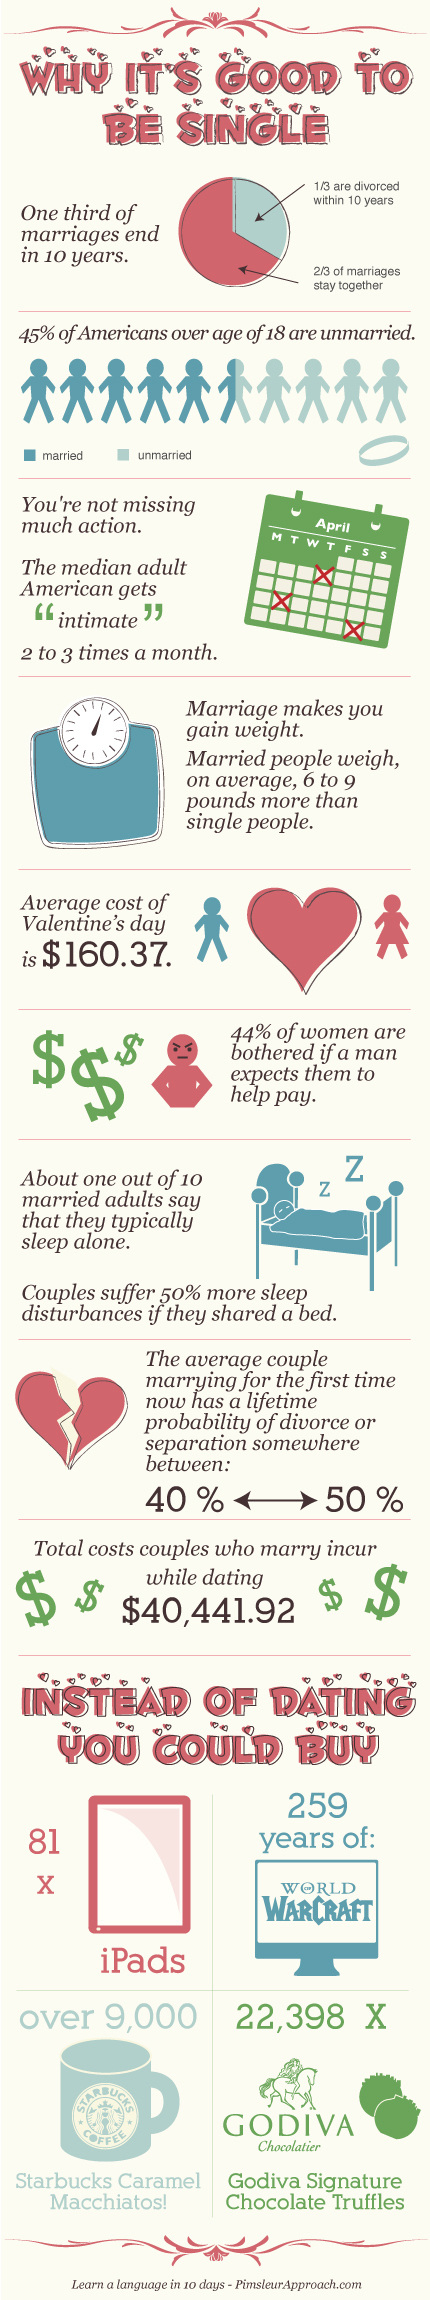 Is it good to be single? An Infographic's tale | The Infographics Showcase | Infographics Galore | Scoop.it